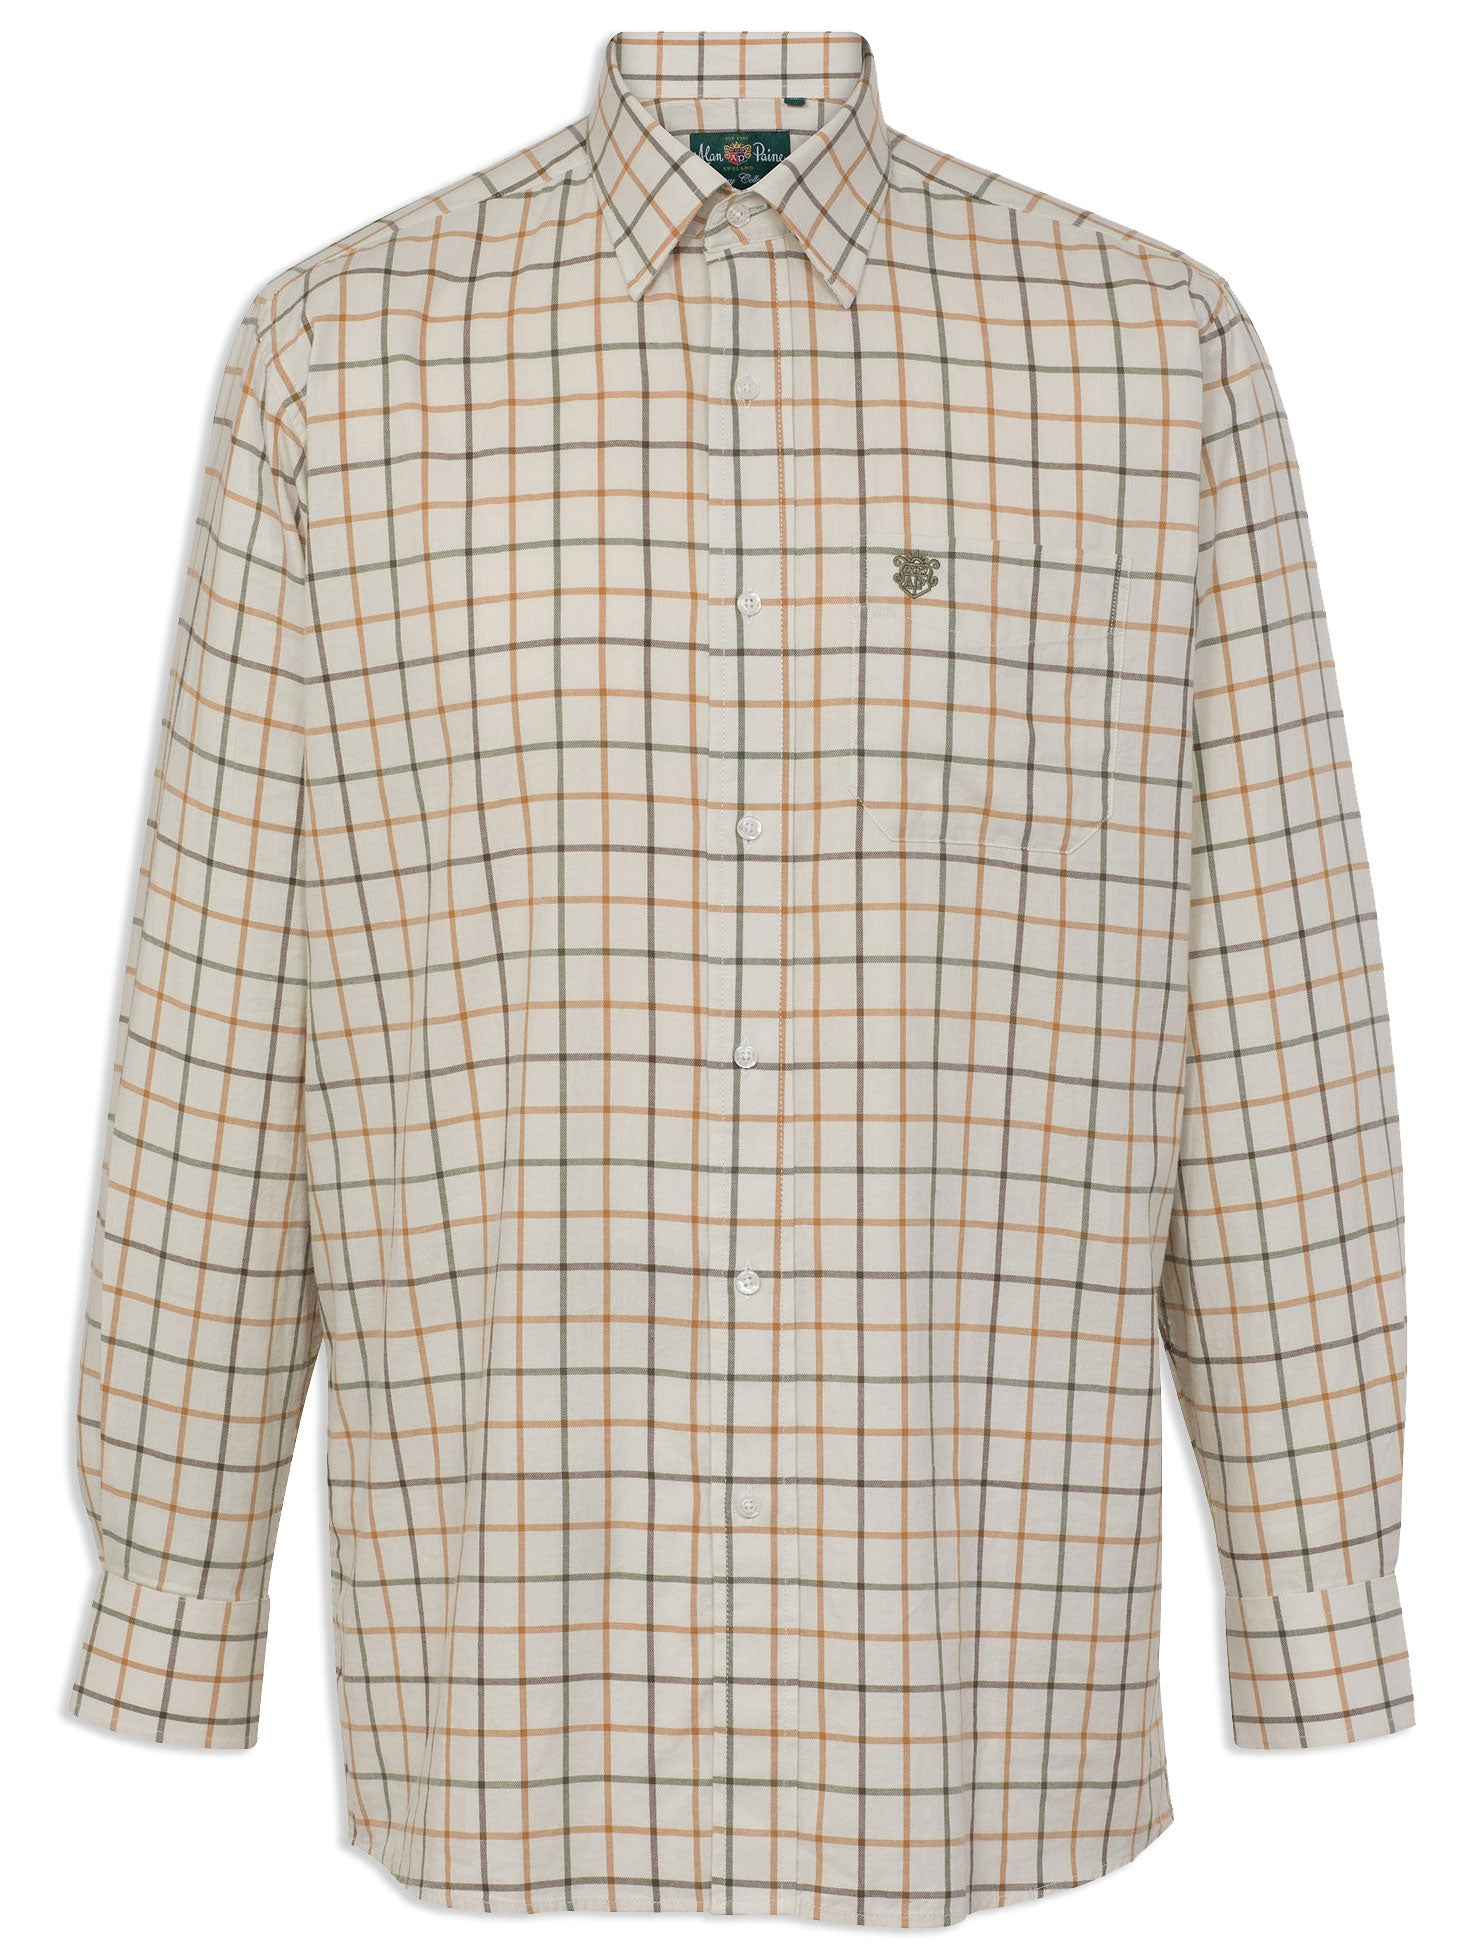 Alan Paine Ilkley Men's Shirt | Olive Check tattersall all coatton